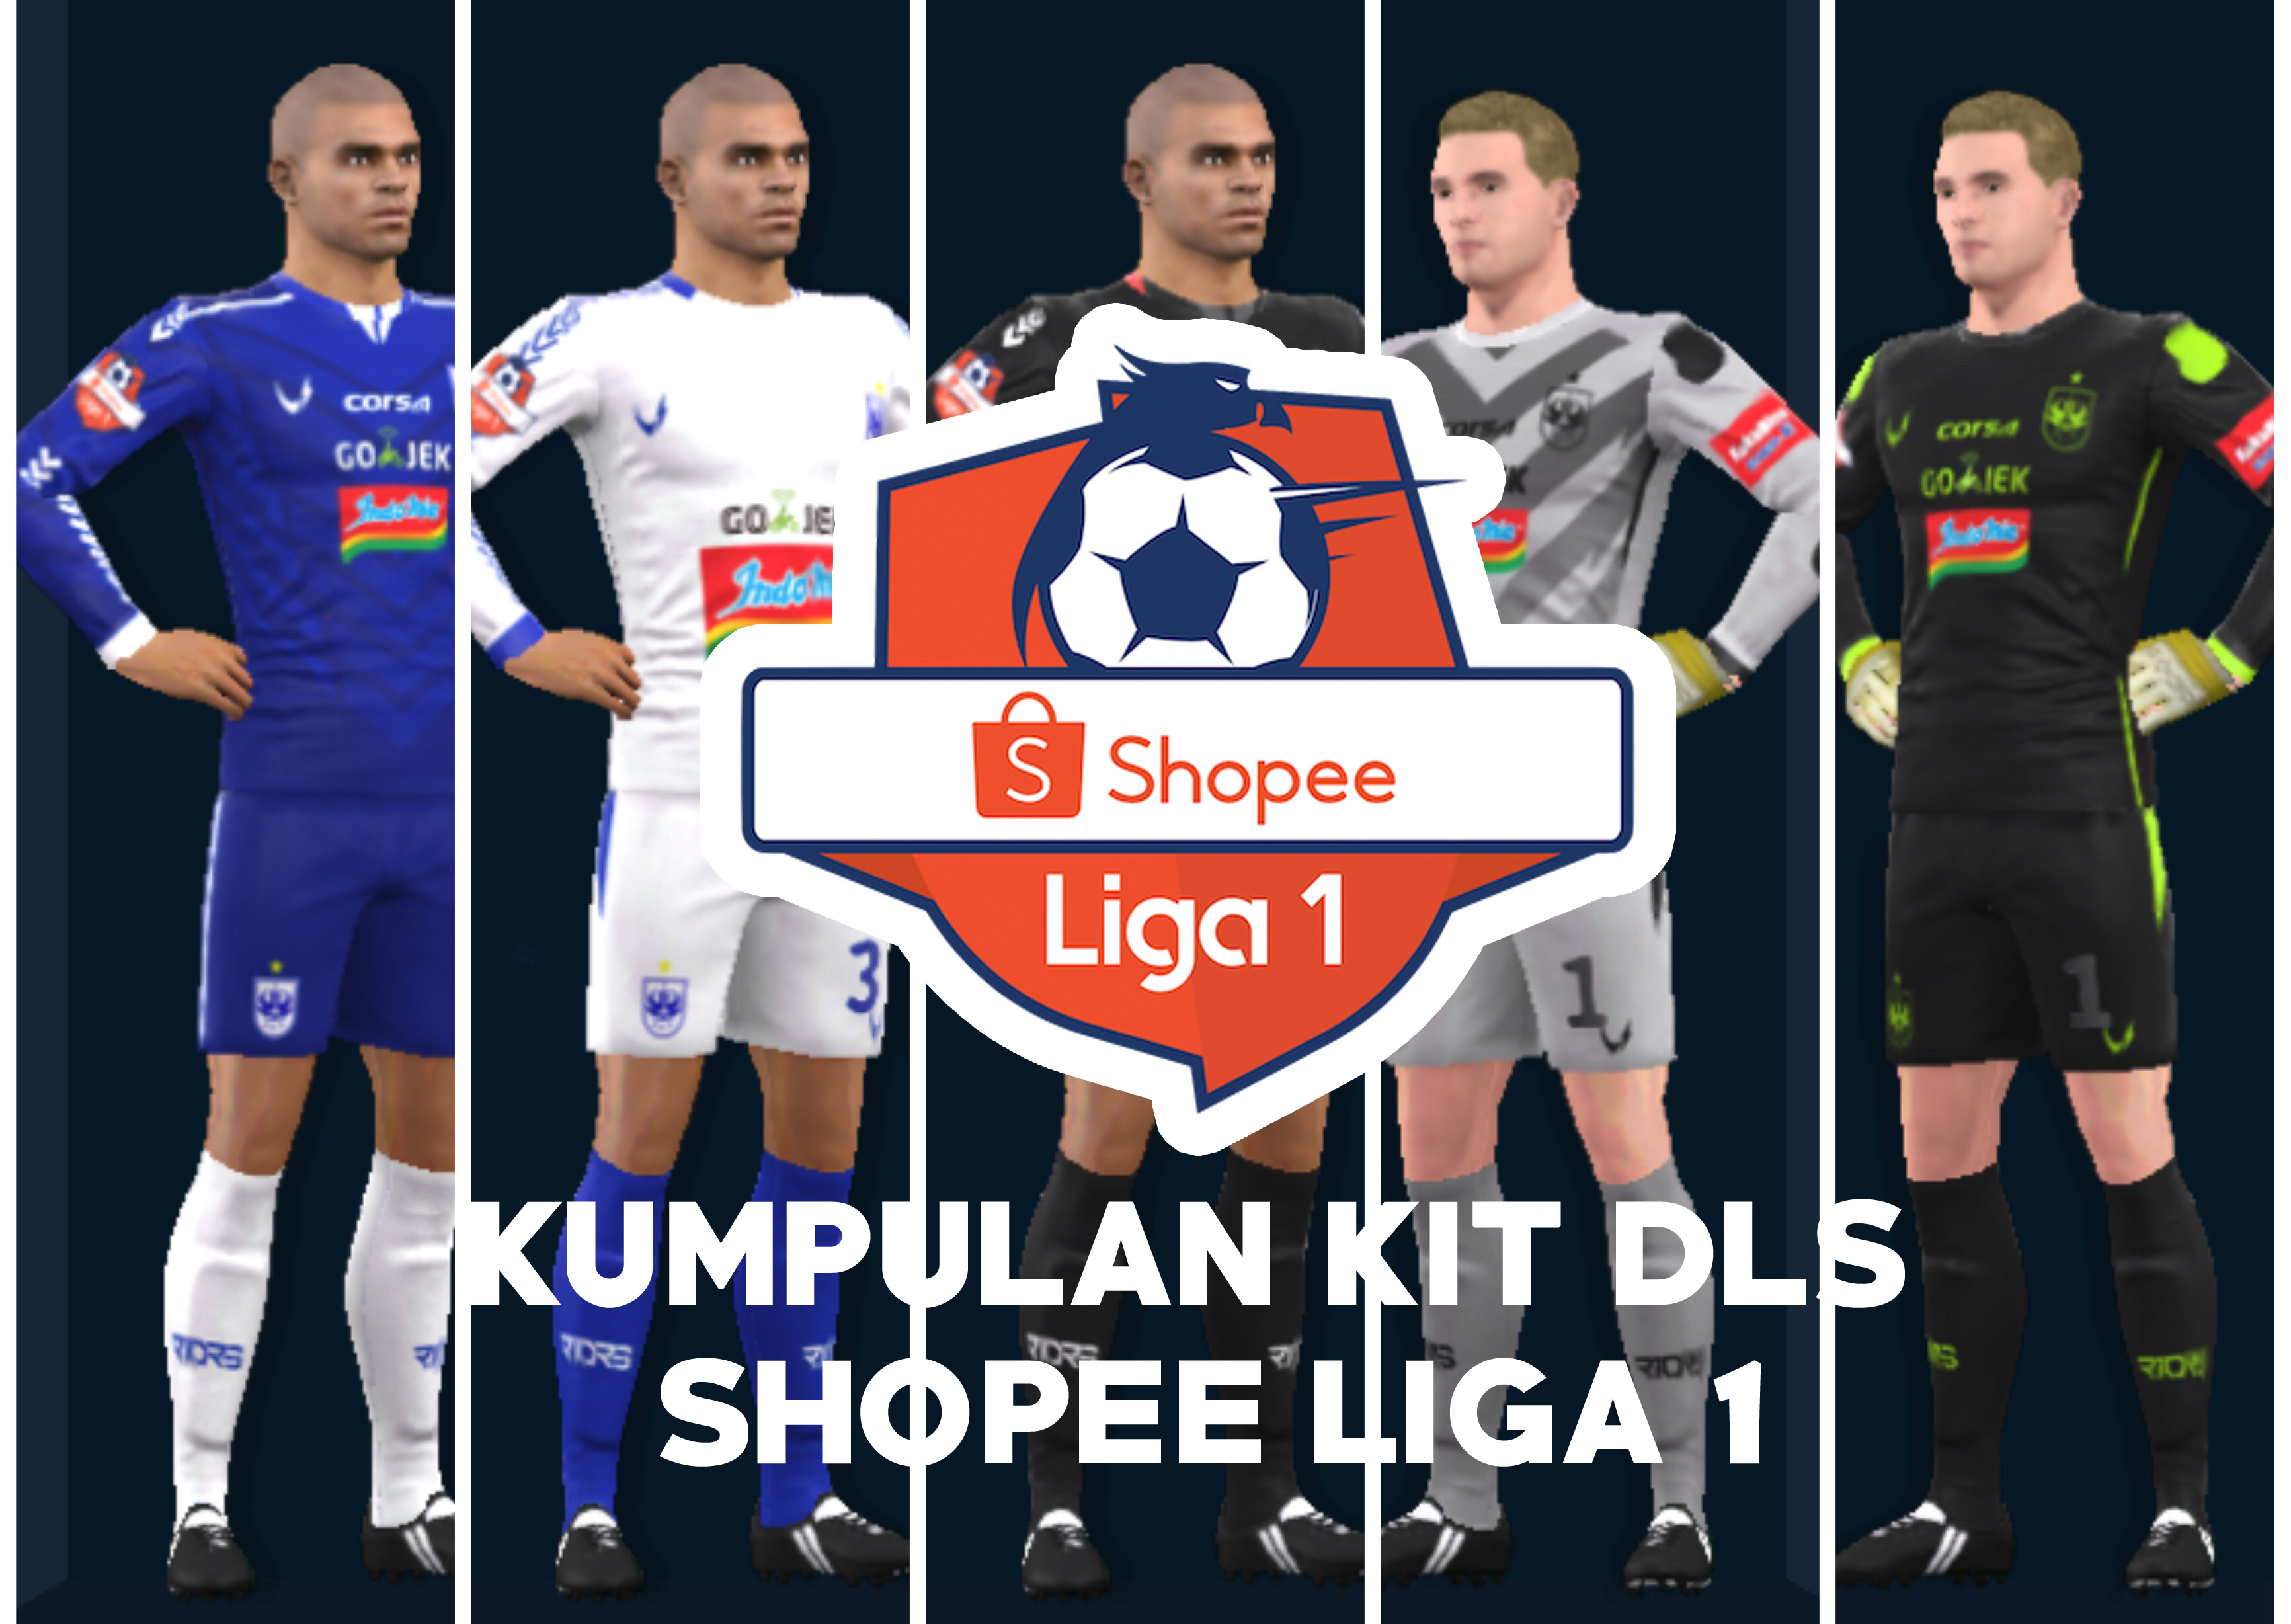 kit dls shopee liga 1